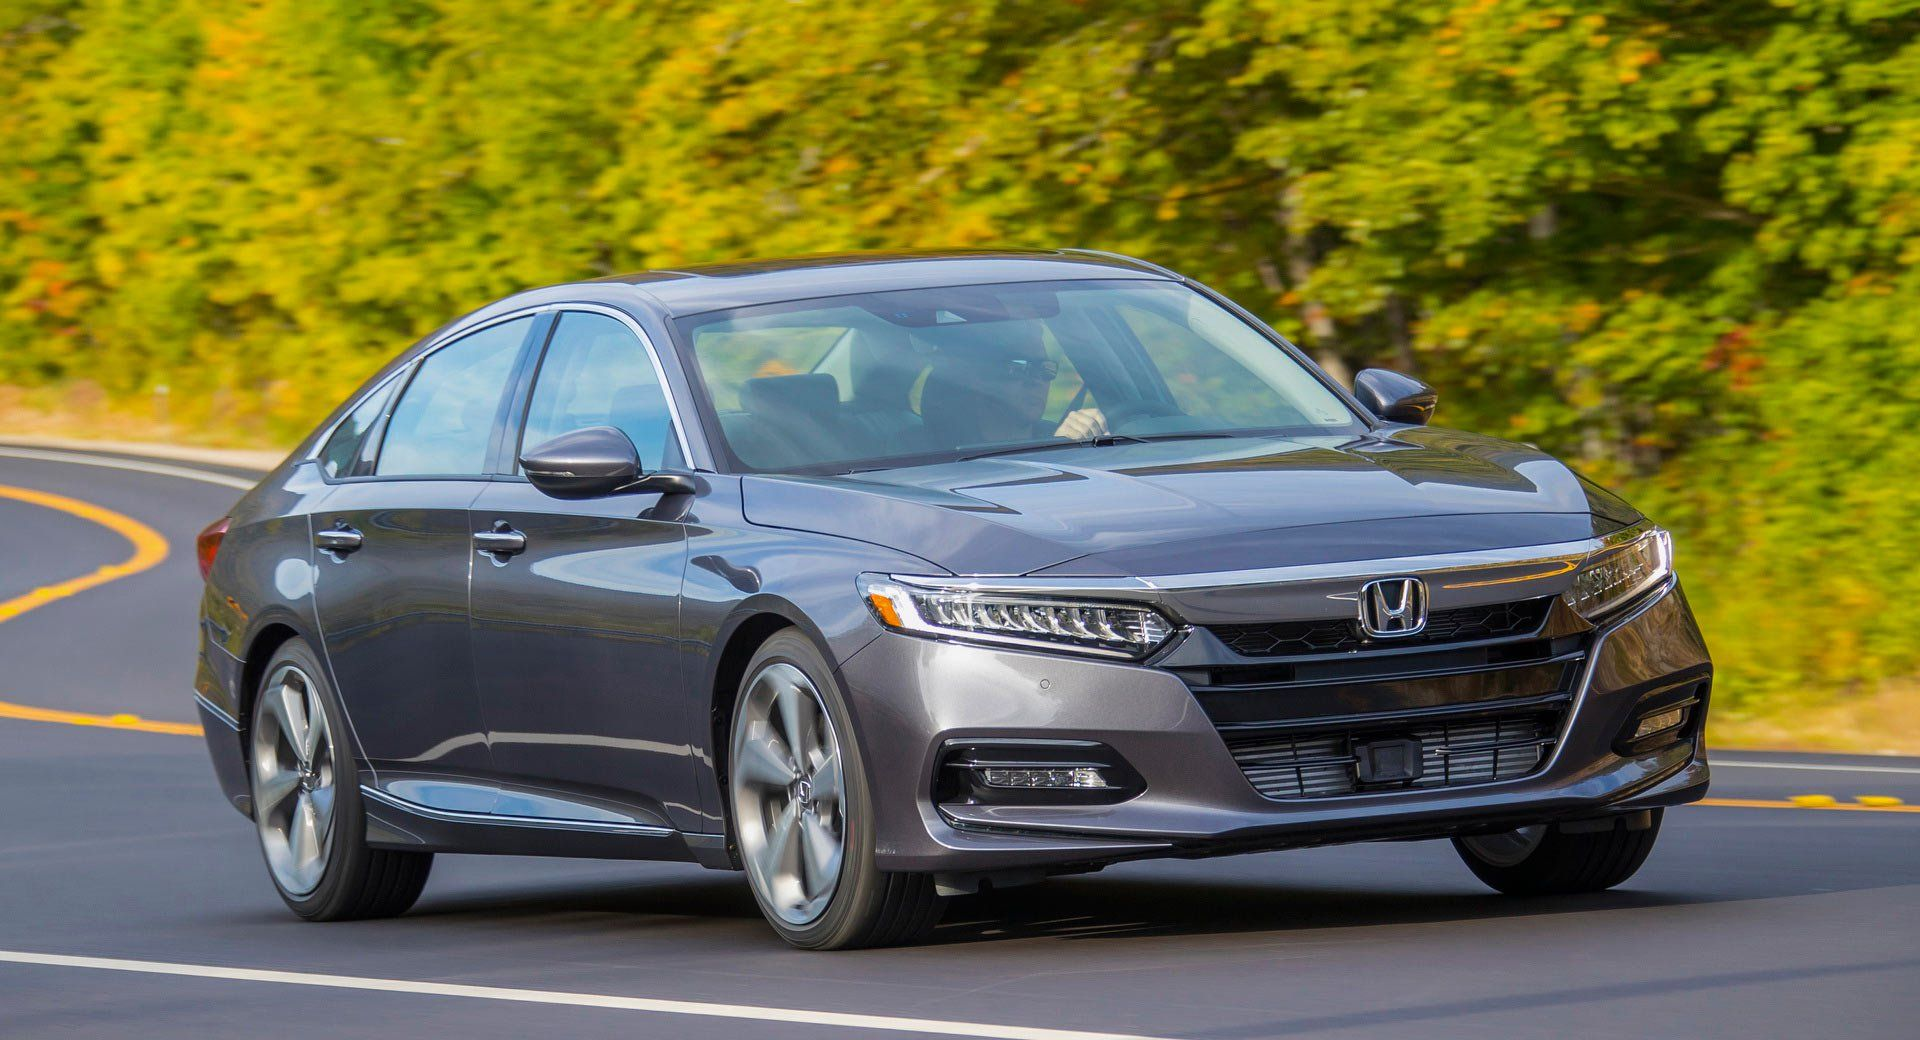 2020 Honda Accord In Showrooms September 17 Starts From 23 870 Honda Hondaaccord Newcars Prices Cars Carsofinstagram Carporn Carlifes Cars Honda